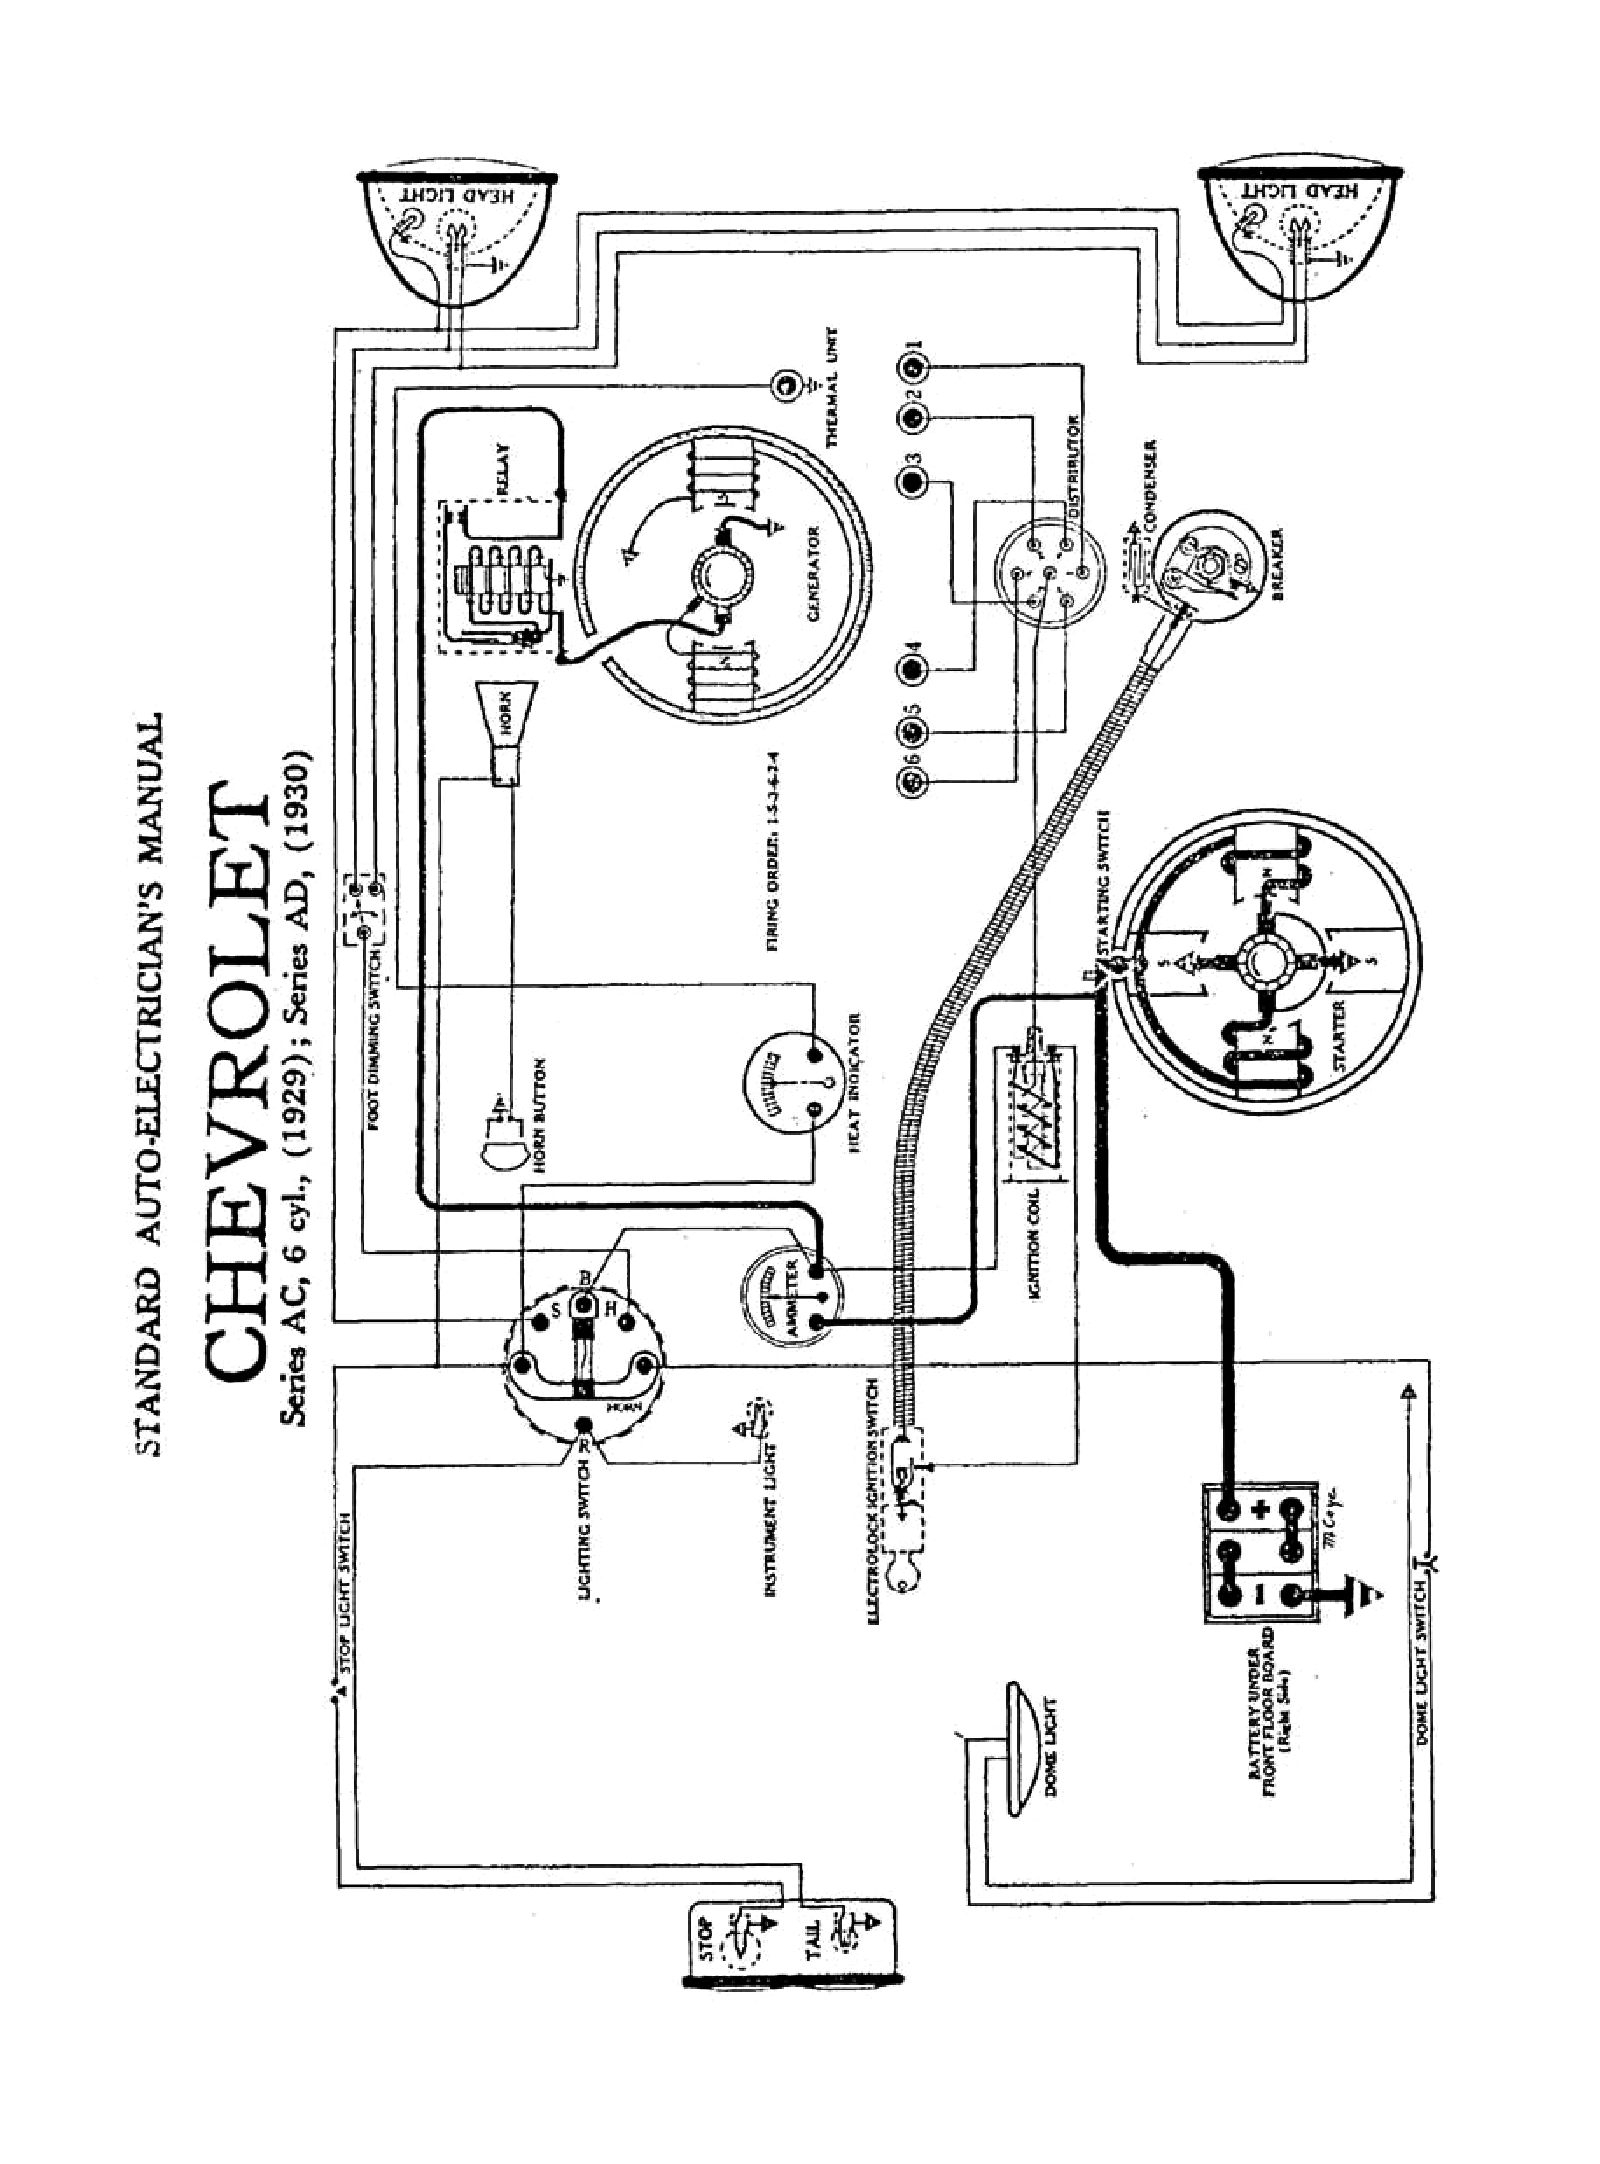 8n 12 volt conversion diagram, 8n ford points distributor wiring, 8n 6 volt regulator, 8n 12 volt conversion wiring, on 8n 6 volt wiring diagram